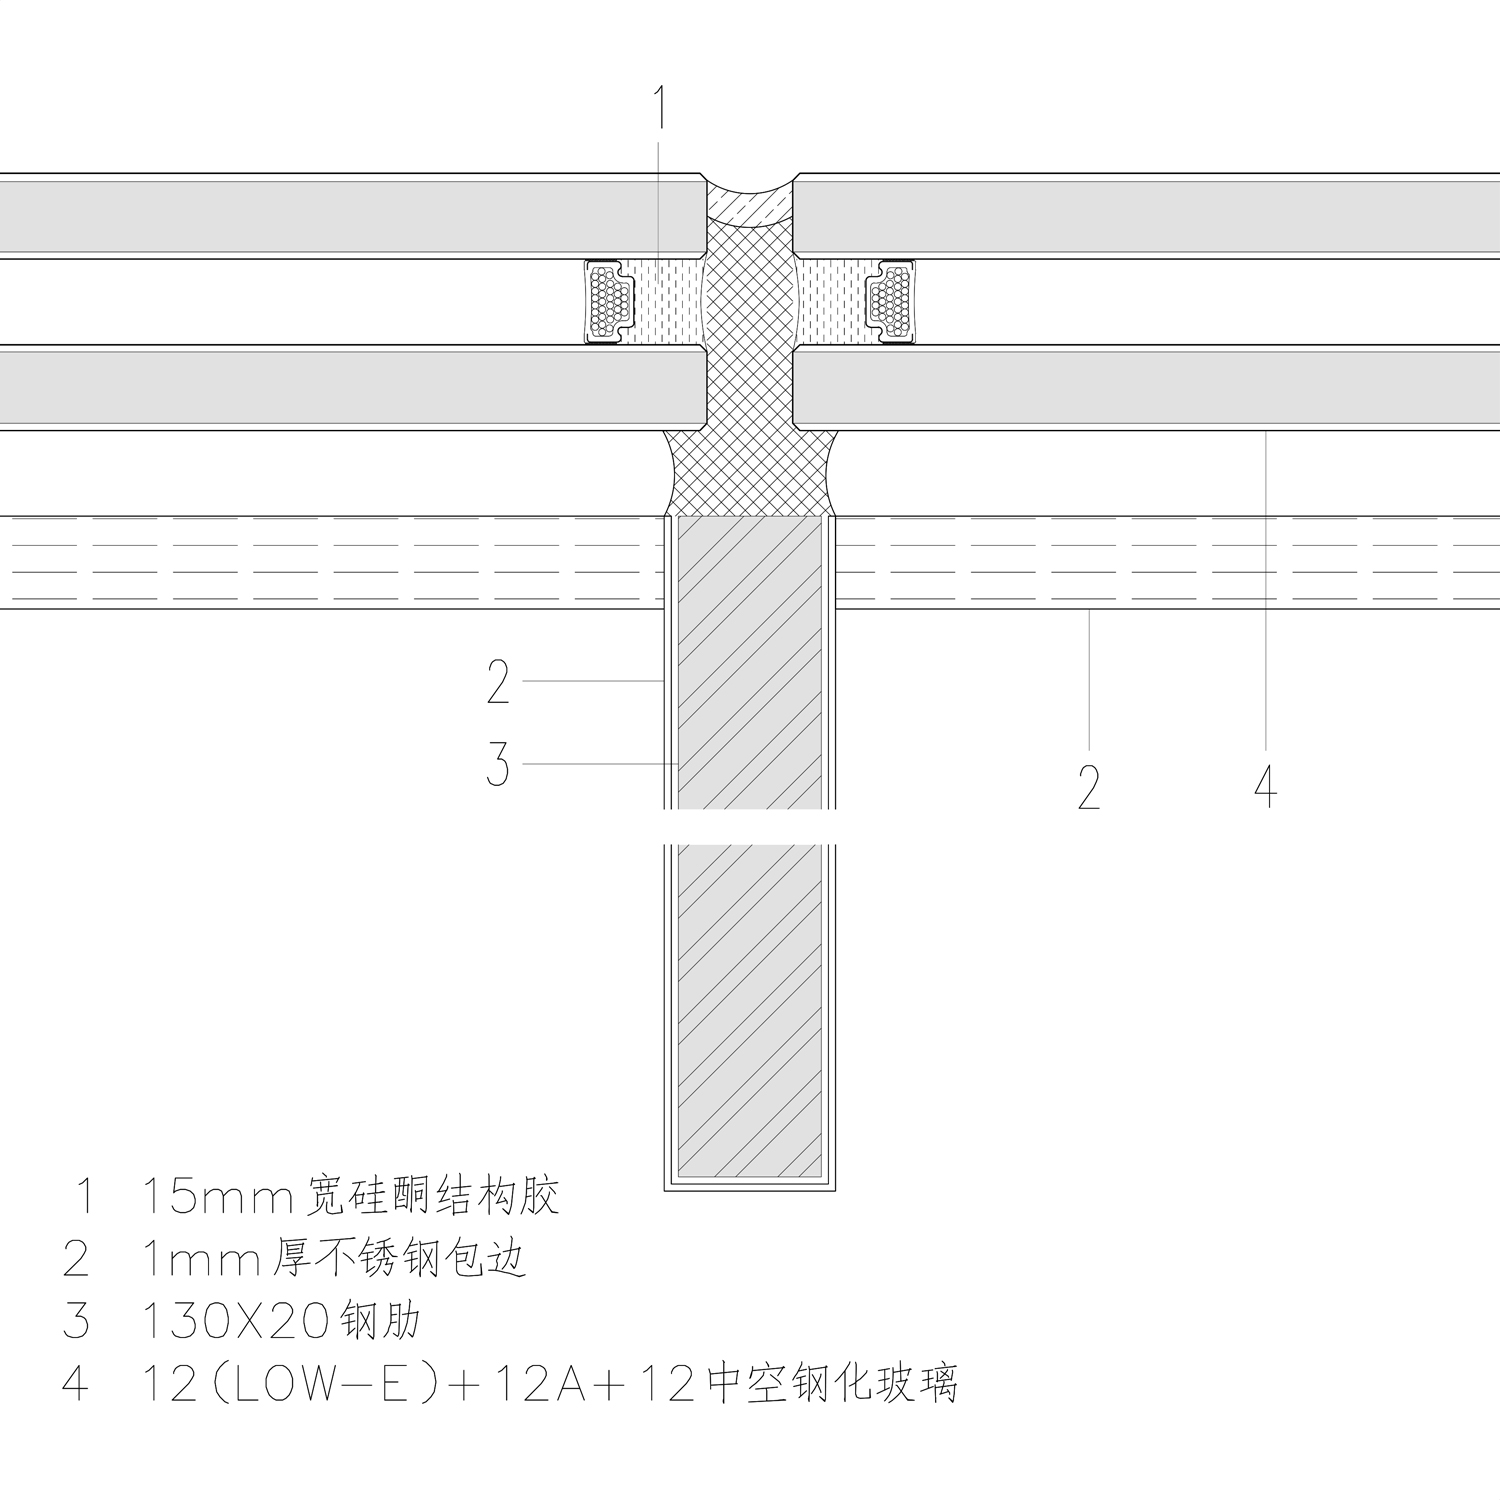 Gadline Studio Museum Of Contemporary Art Yong Qing Mansion Wire Diagram Show Captions